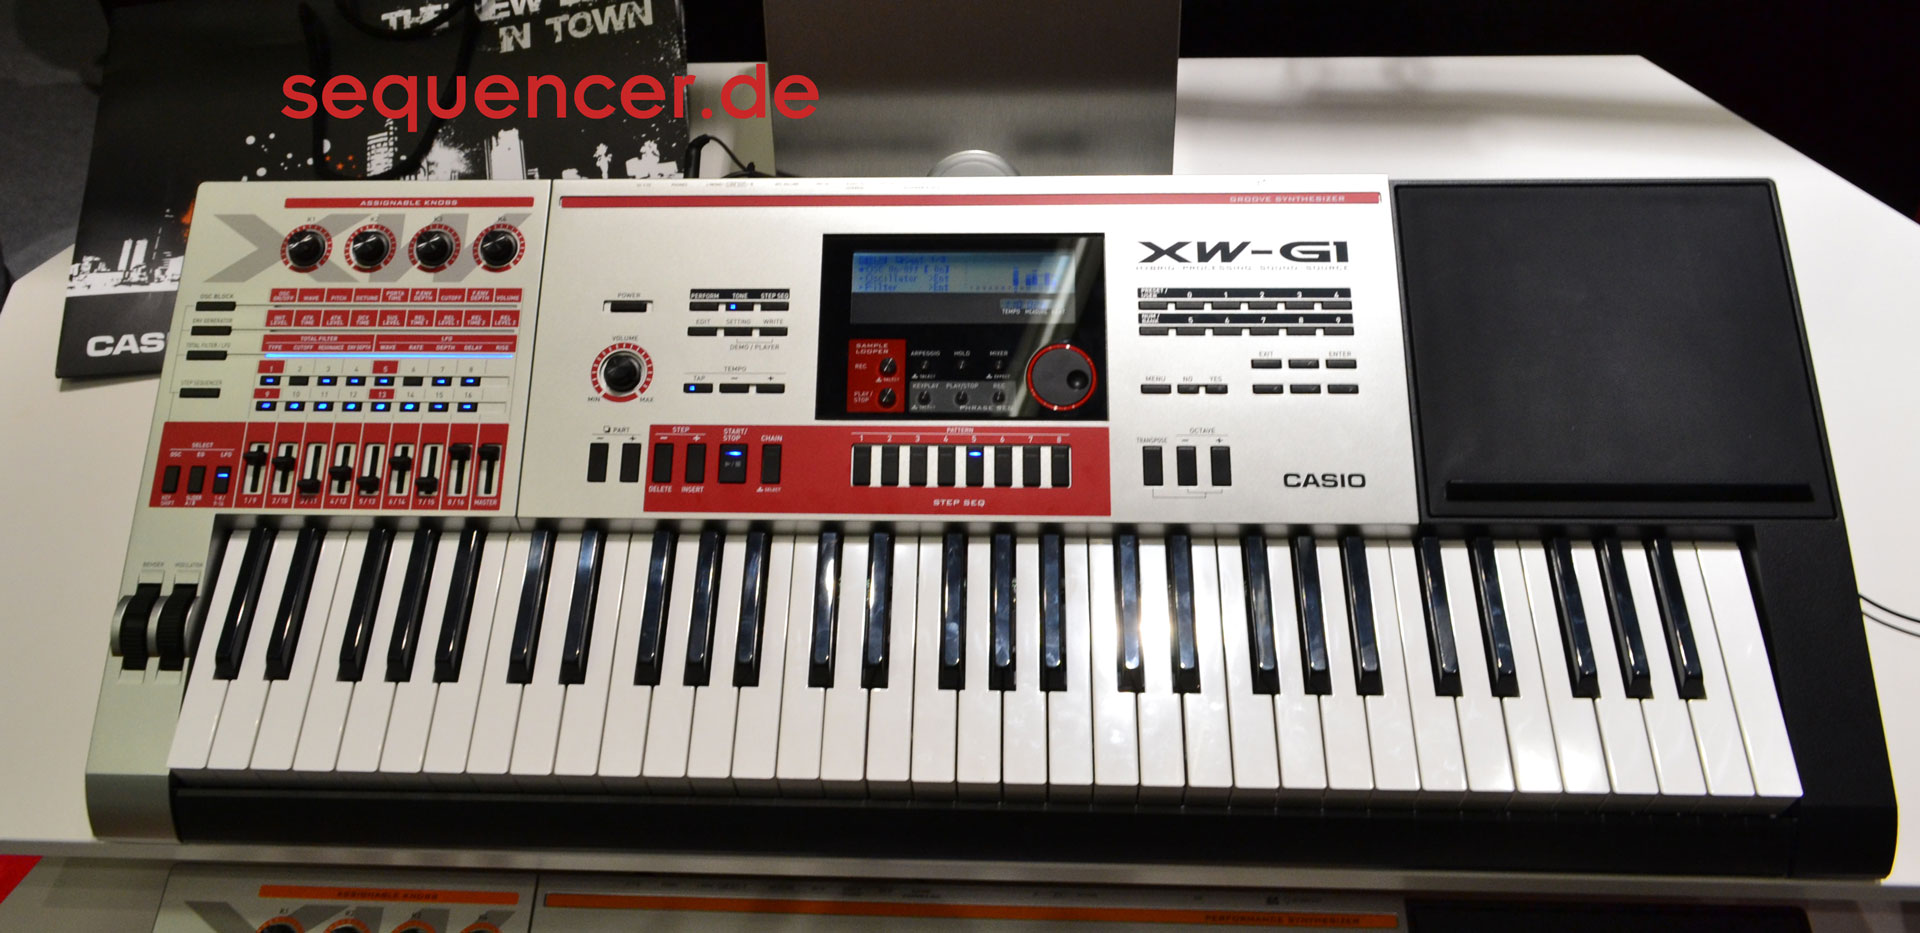 Casio XWG1 synthesizer